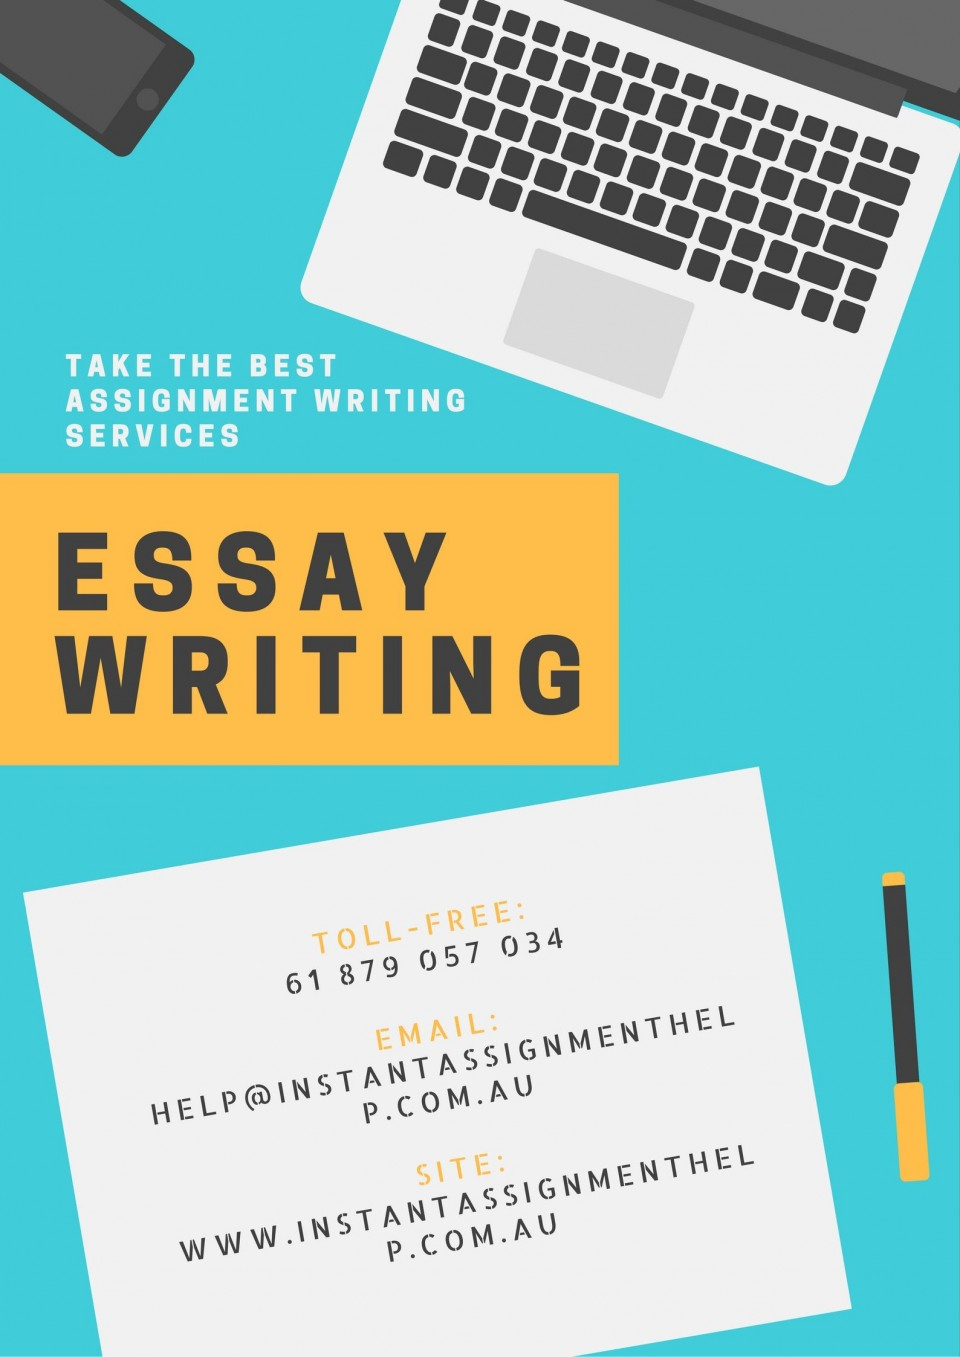 004 Essay Writing Help Example Frightening For Middle School Near Me 960